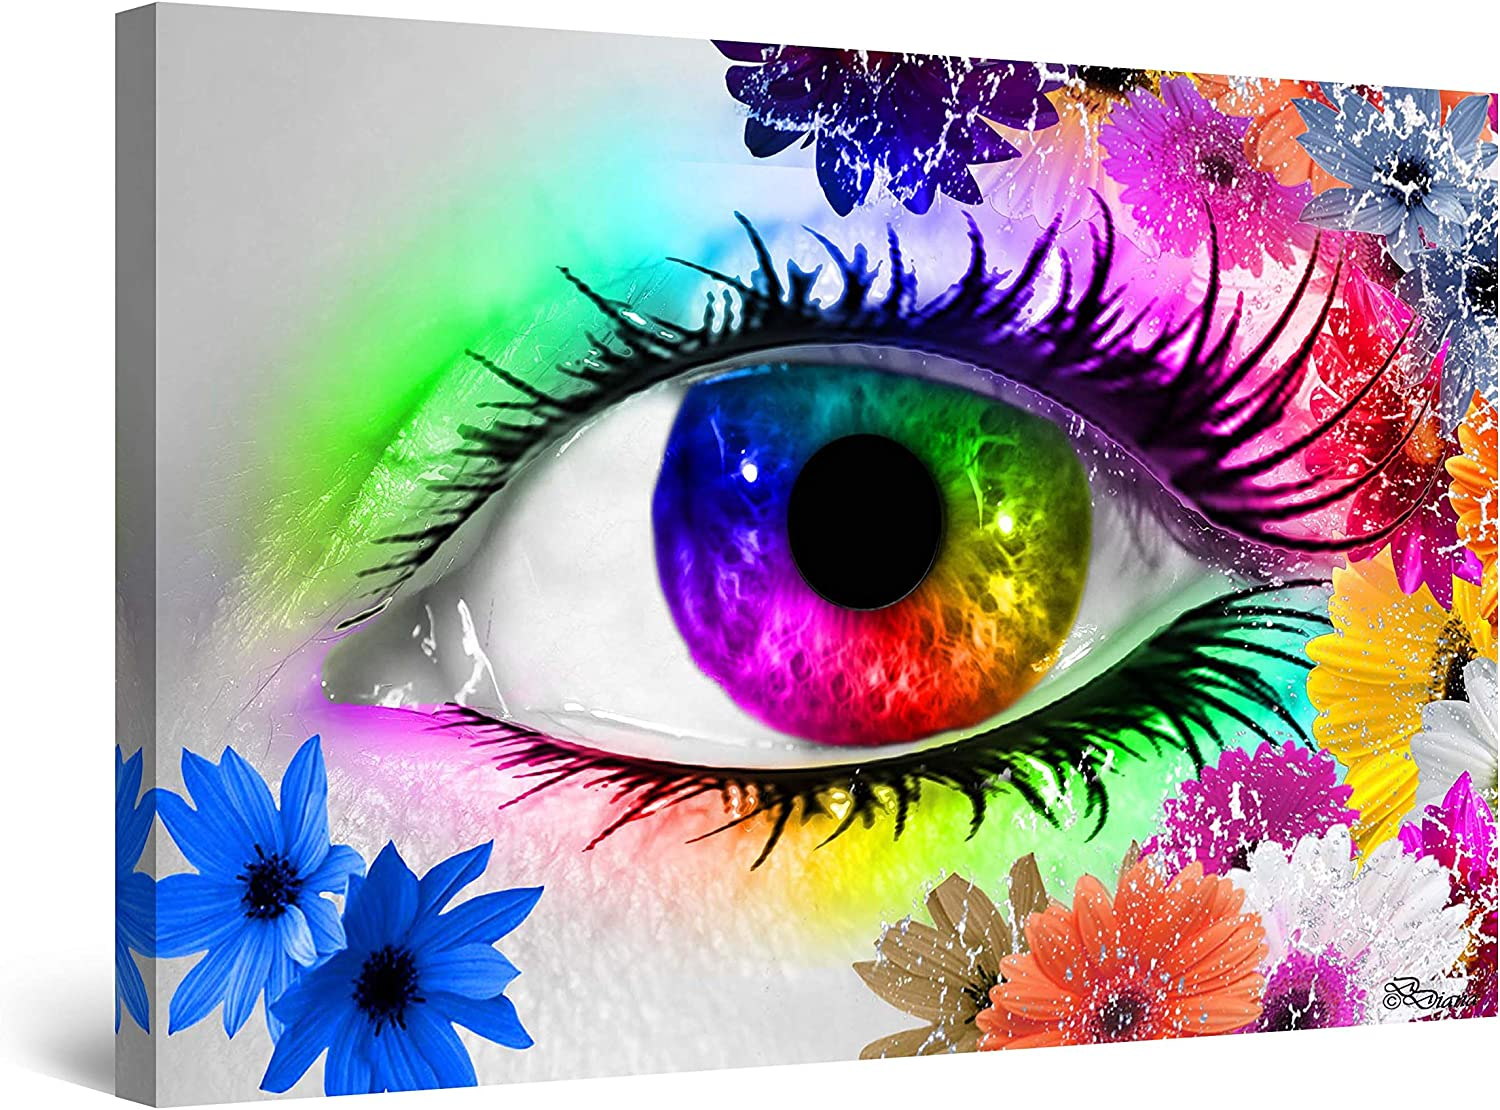 Startonight Wall Art Canvas High material The Colors Abst Diana by Dedication III Eye of